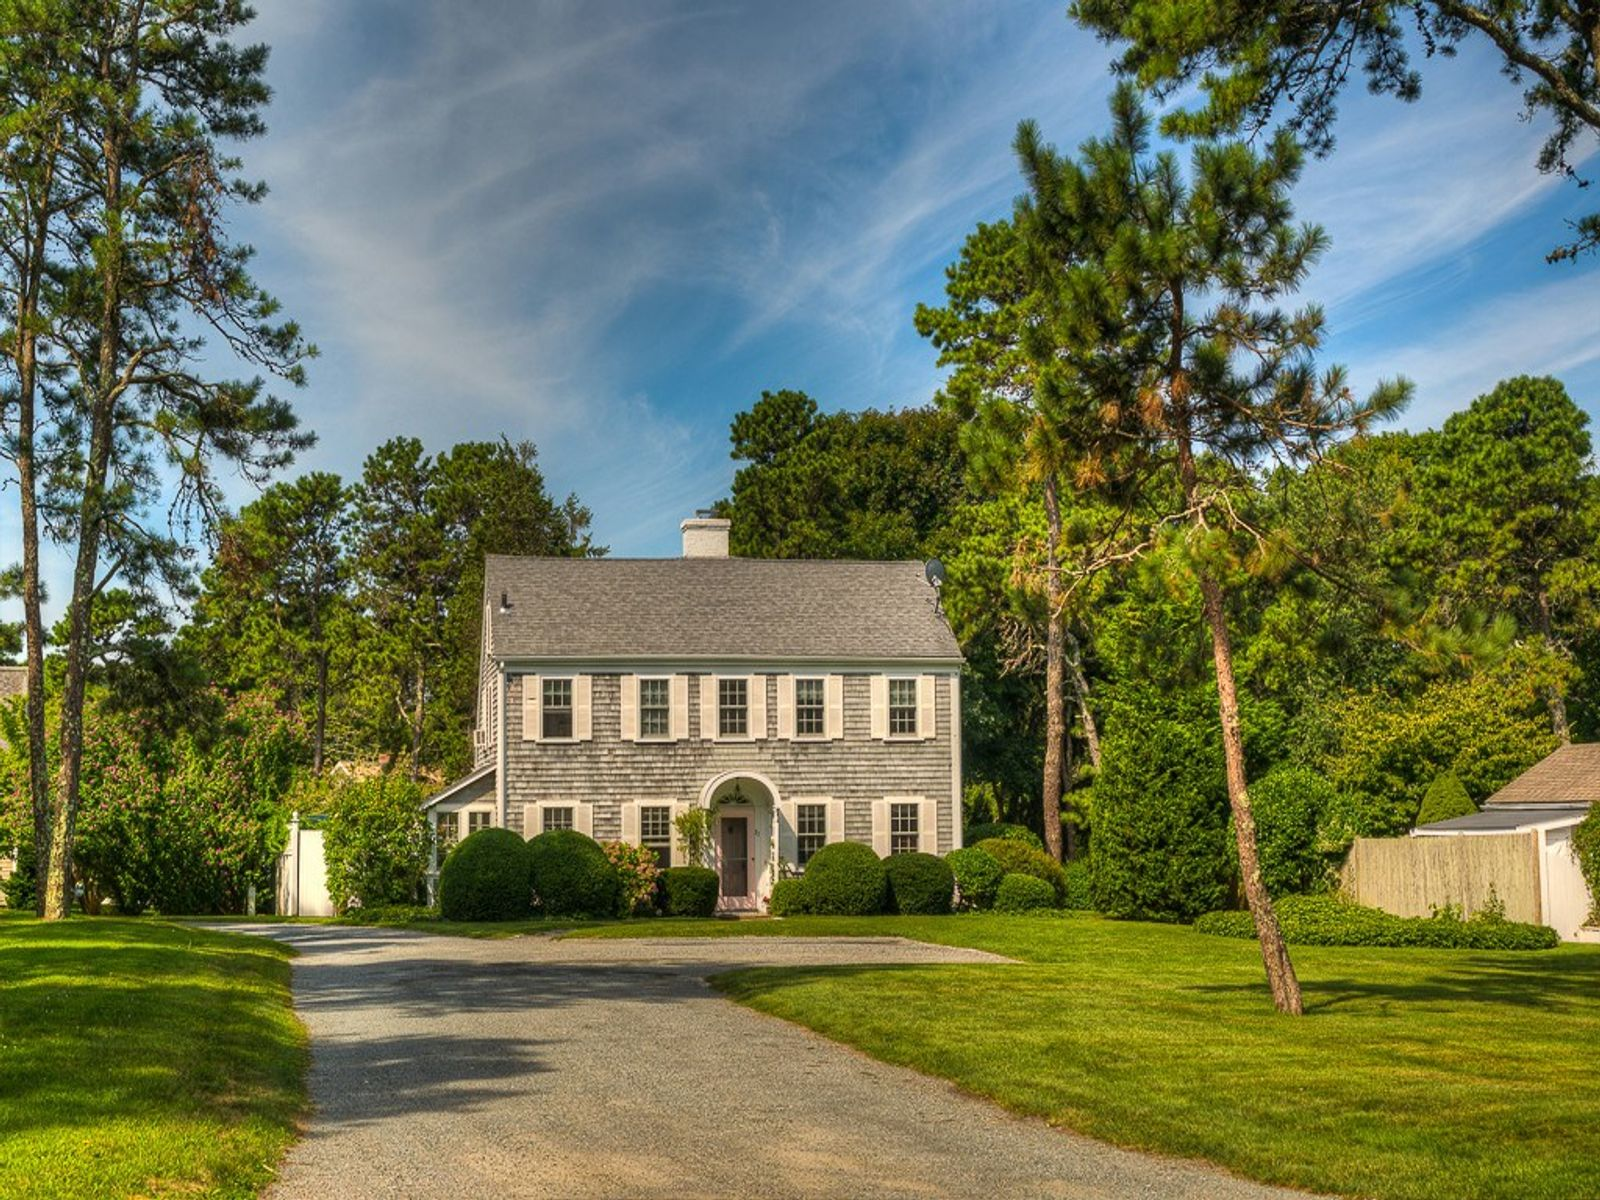 West Bay Regatta Watch, Osterville MA Single Family Home - Cape Cod Real Estate